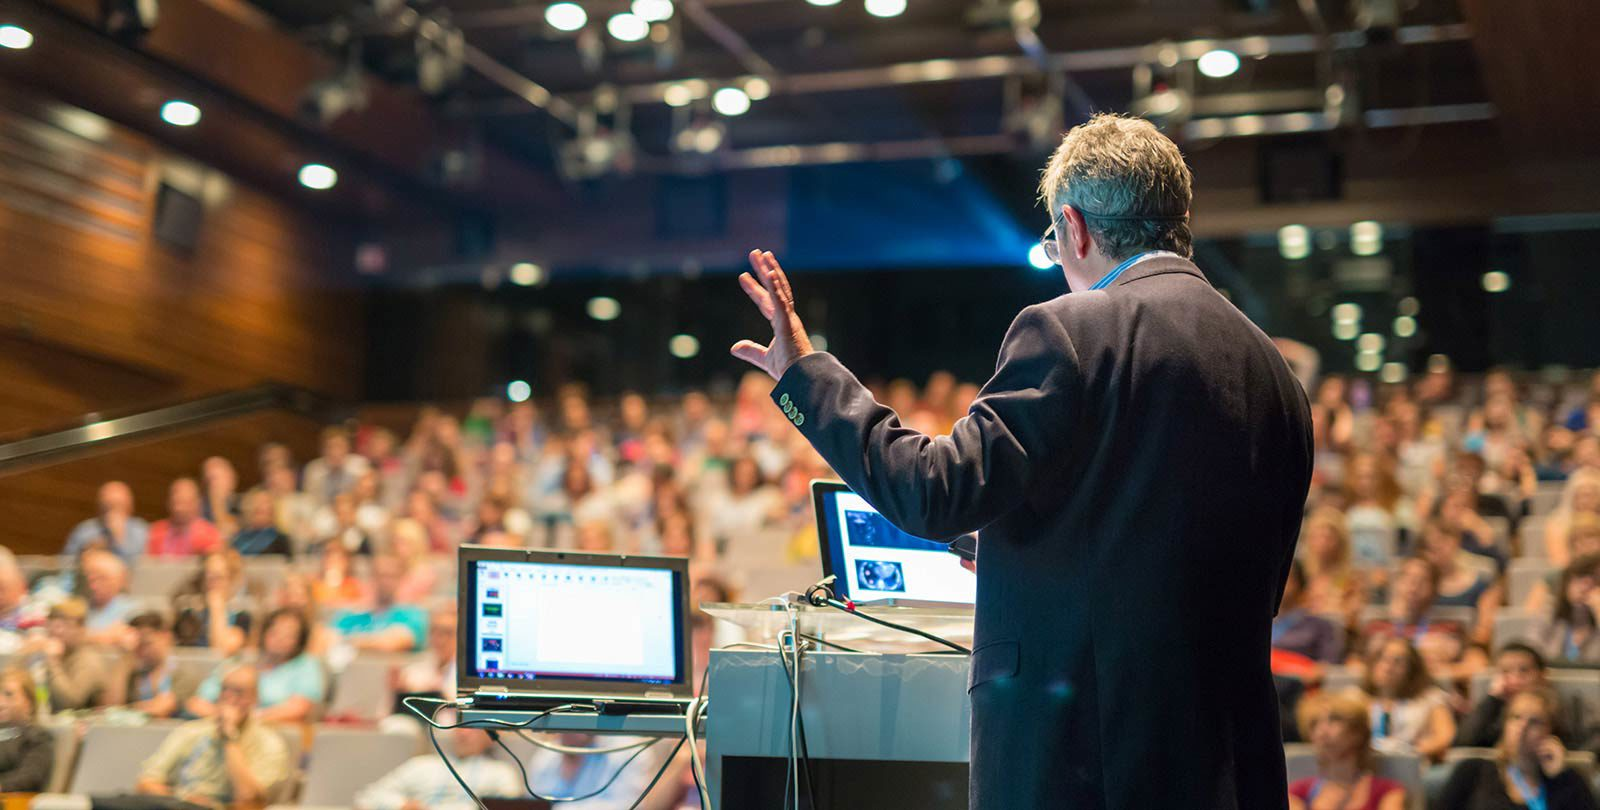 Man with hand in air looking at two laptops talking to full lecture hall.